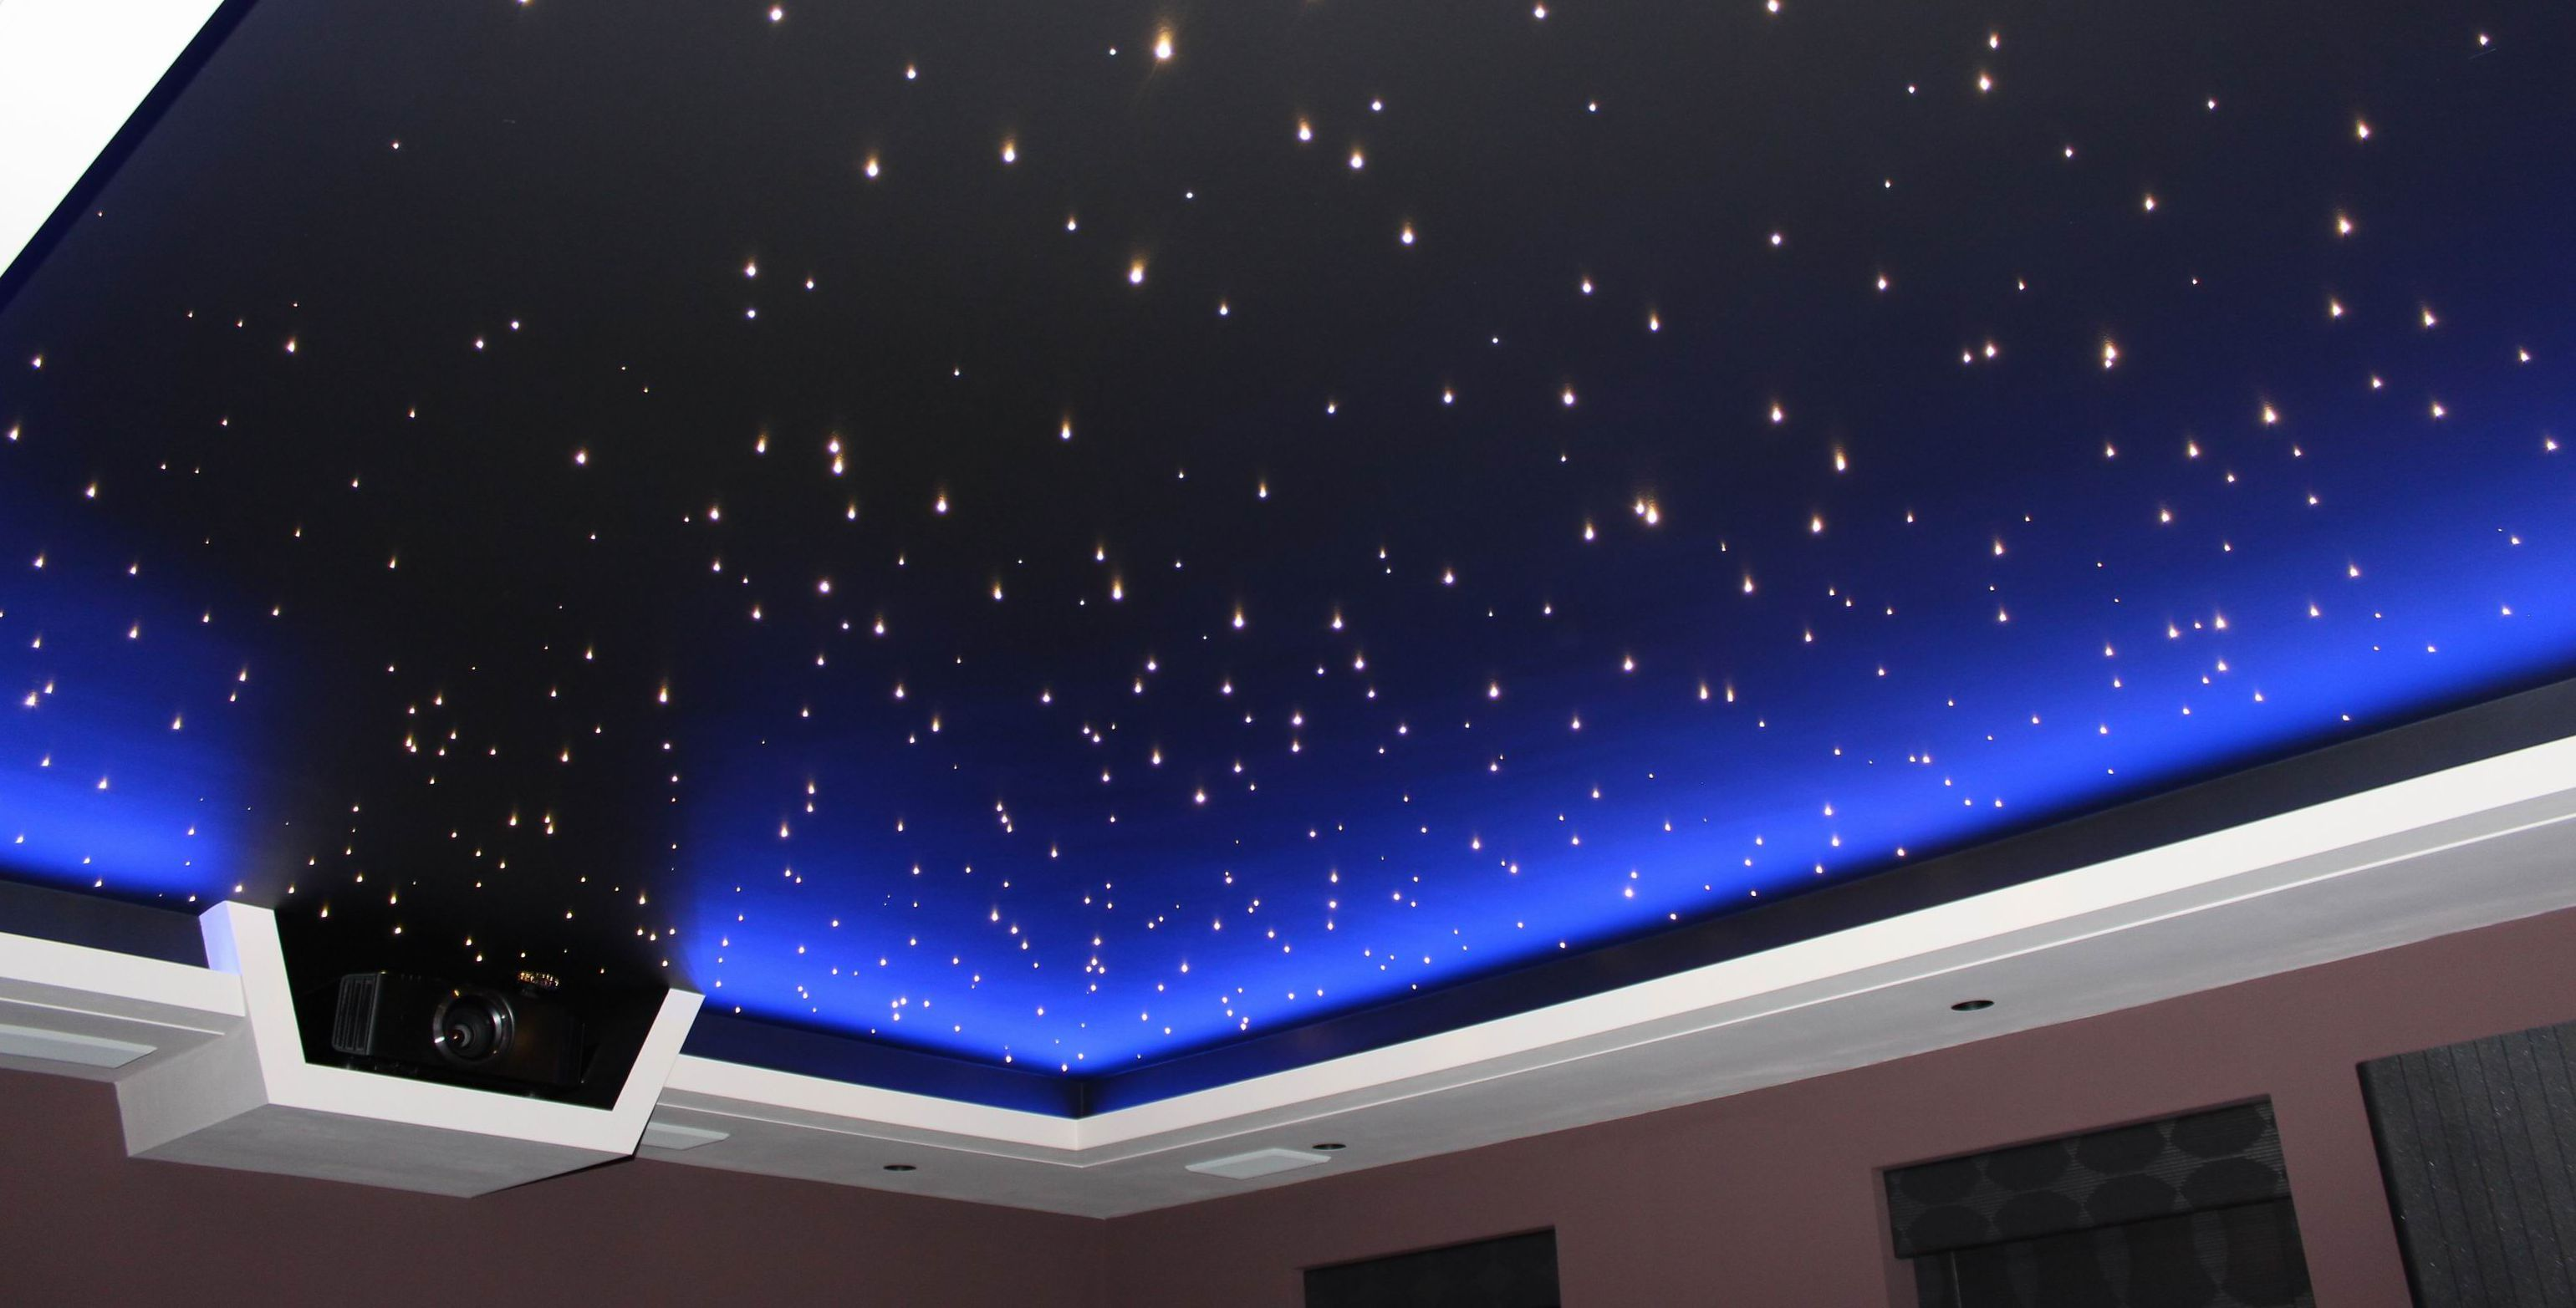 Bedroom ceiling lights stars - Home Cimema Star Ceiling With Blue Led Surround Jpg 3081 1565